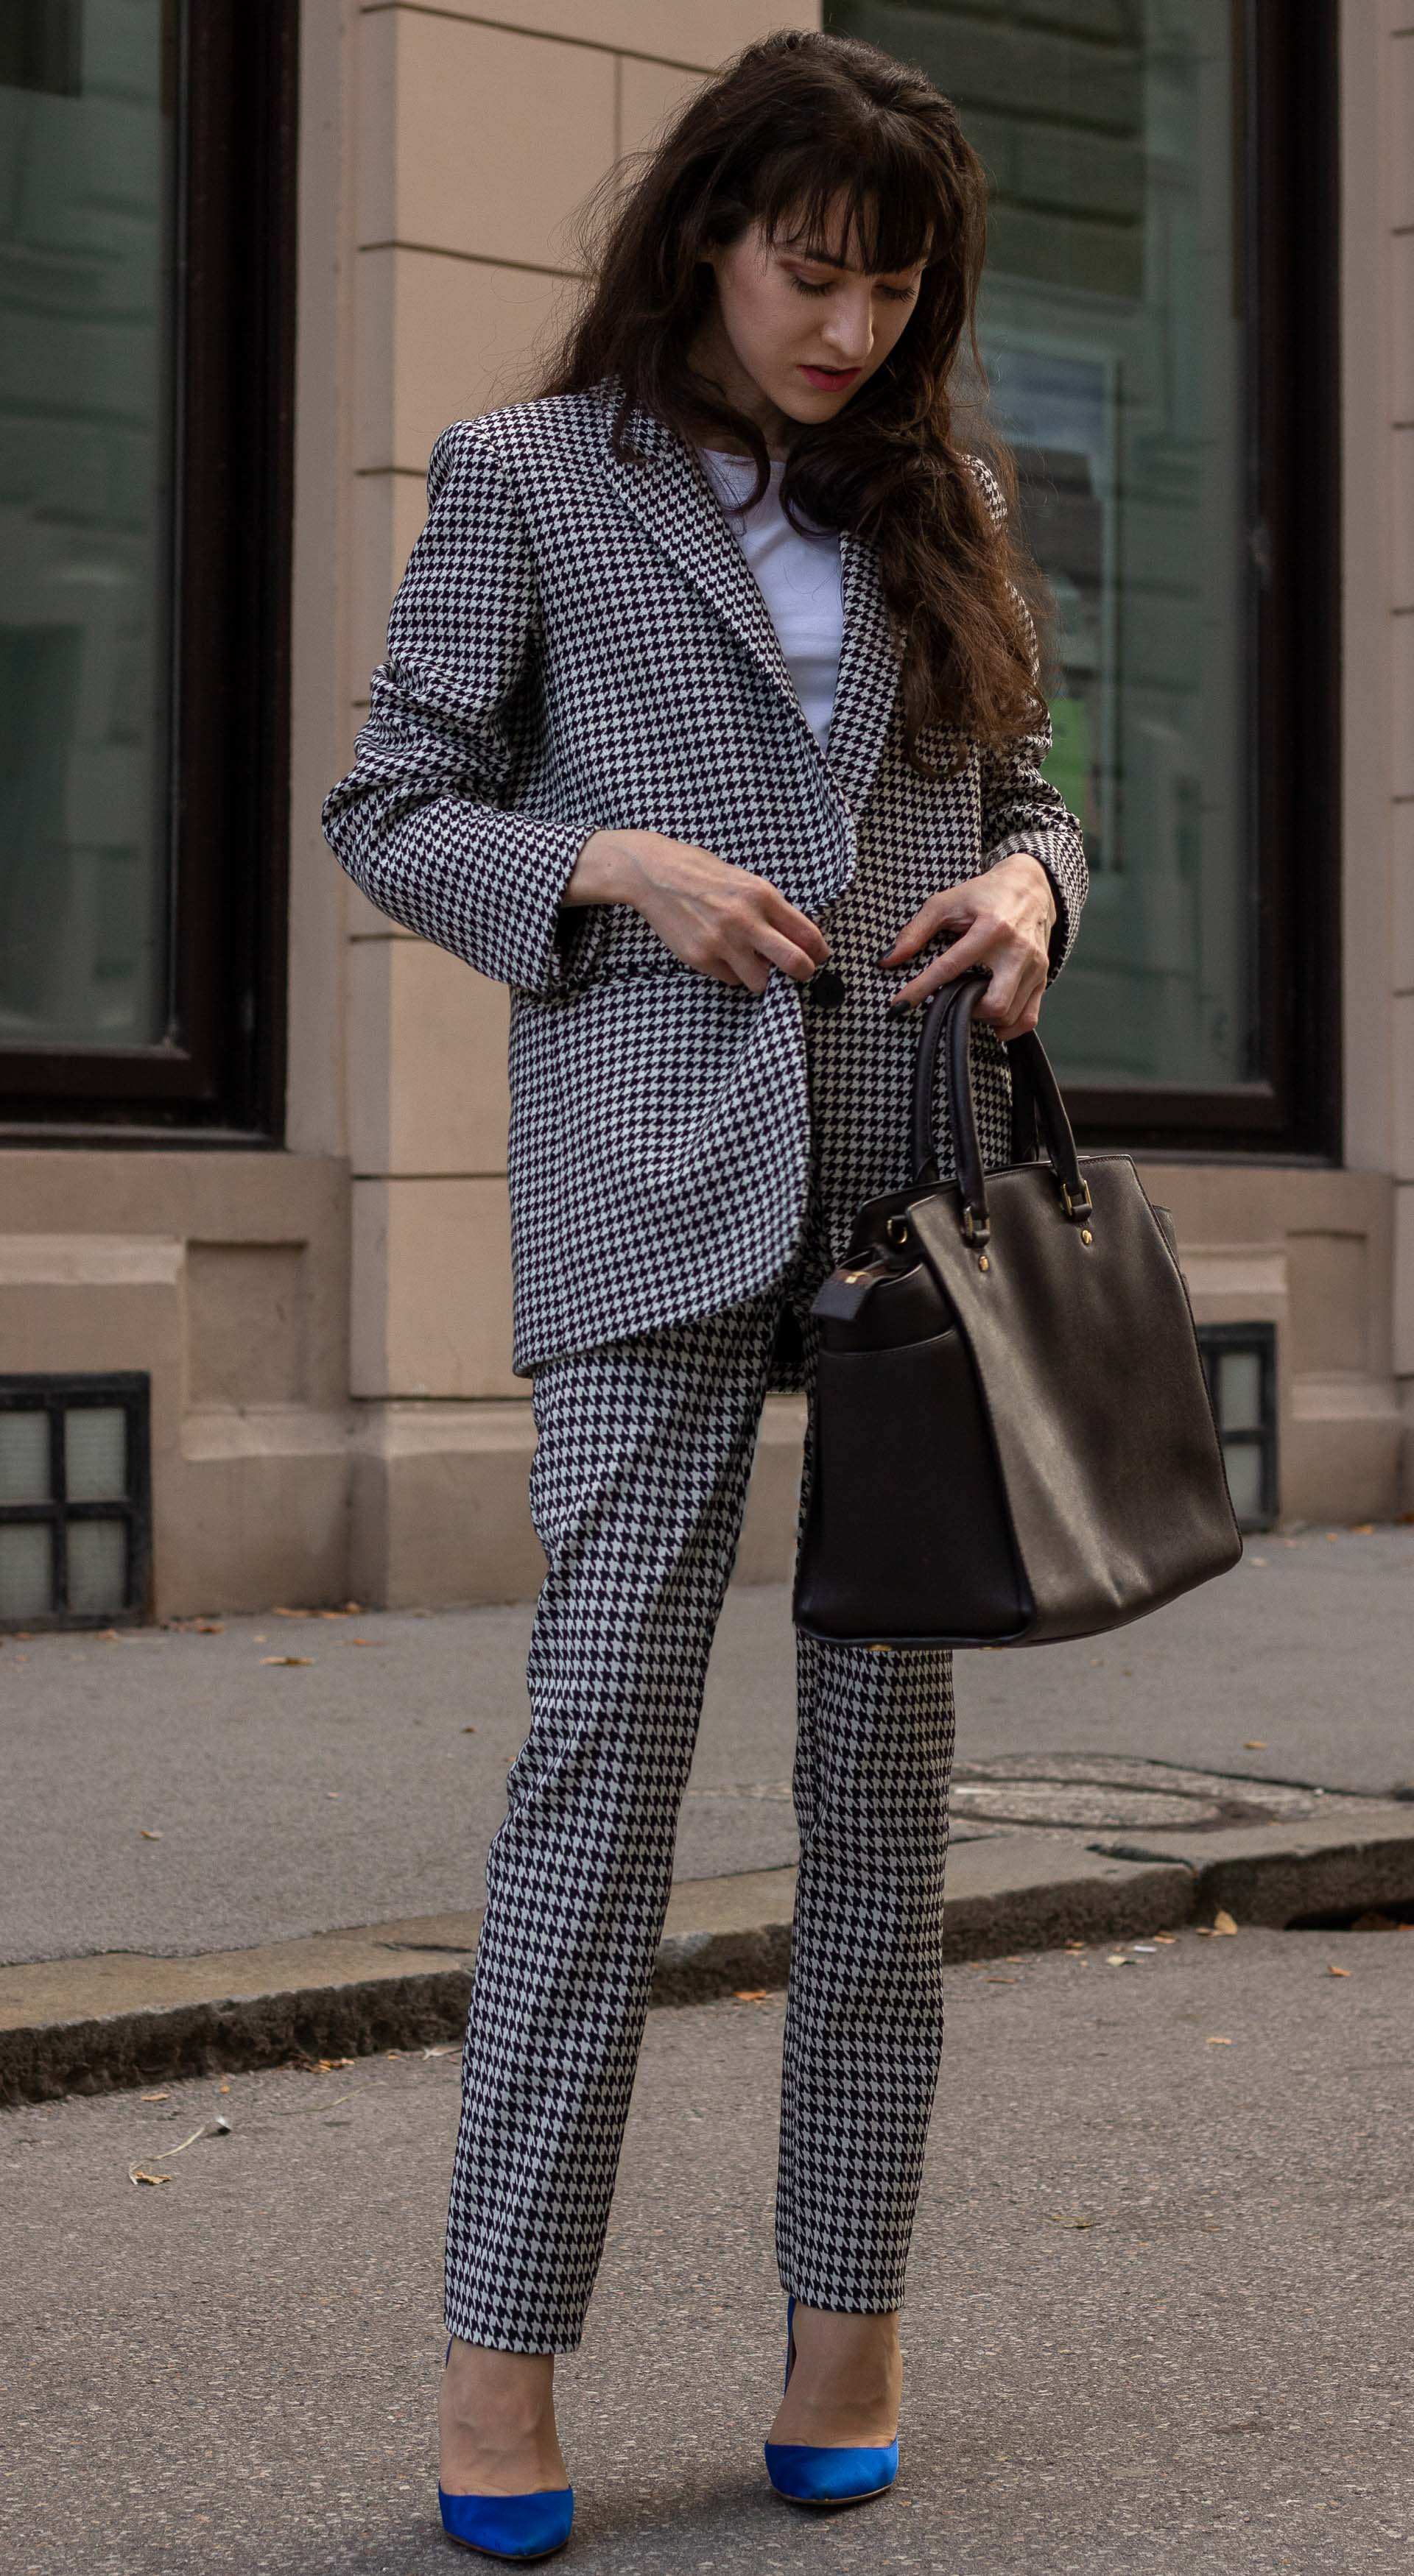 Fashion blogger Veronika Lipar of Brunette from Wall Street wearing white Sandro houndstooth tailored blazer European Culture houndstooth pants Michael Kors Selma bag blue Gianvito Rossi pumps for office in fall